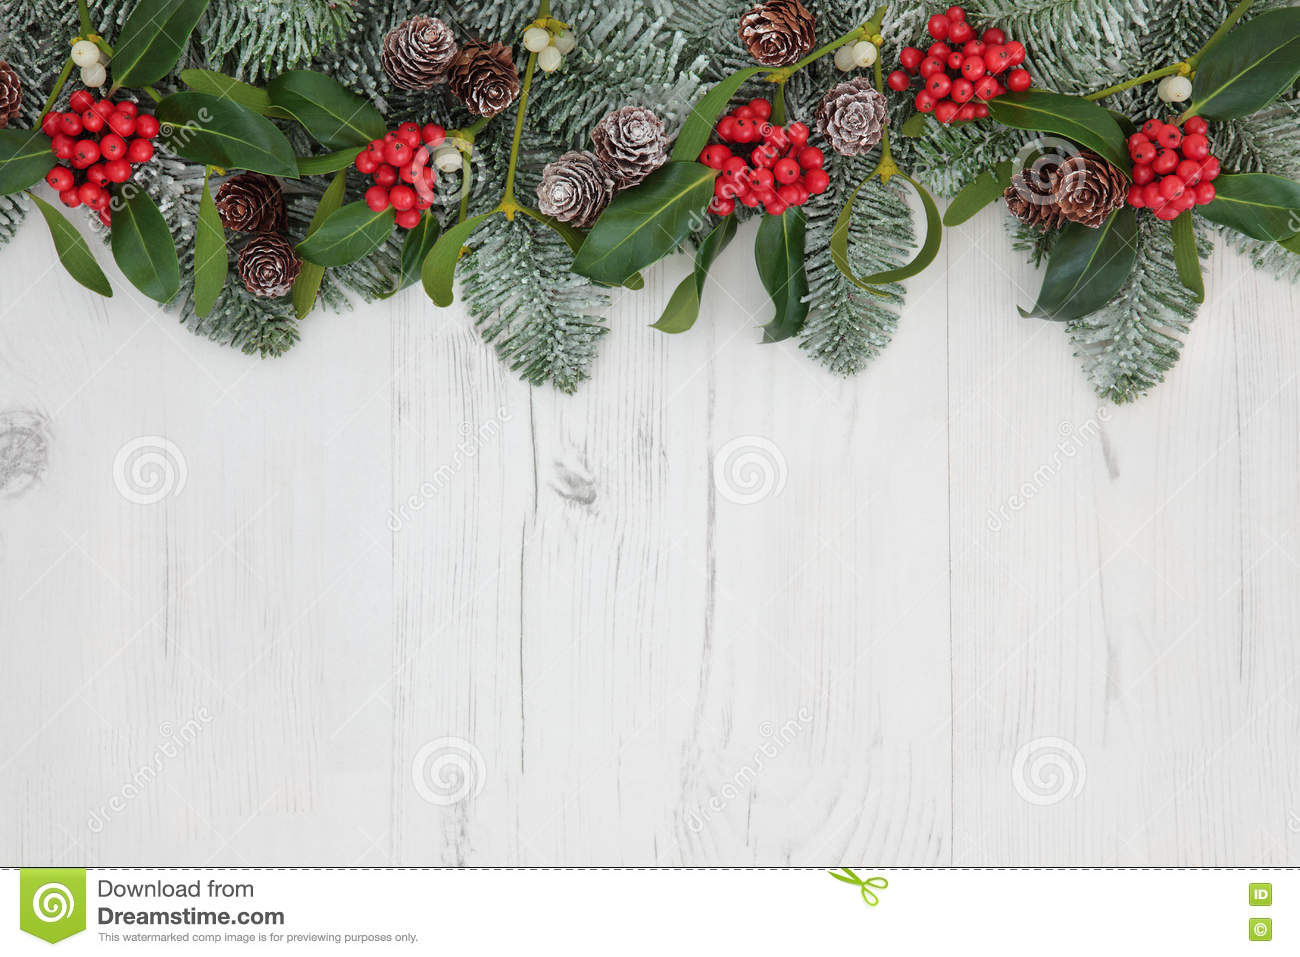 Why is holly a traditional christmas decoration - Traditional Christmas Border Stock Photo